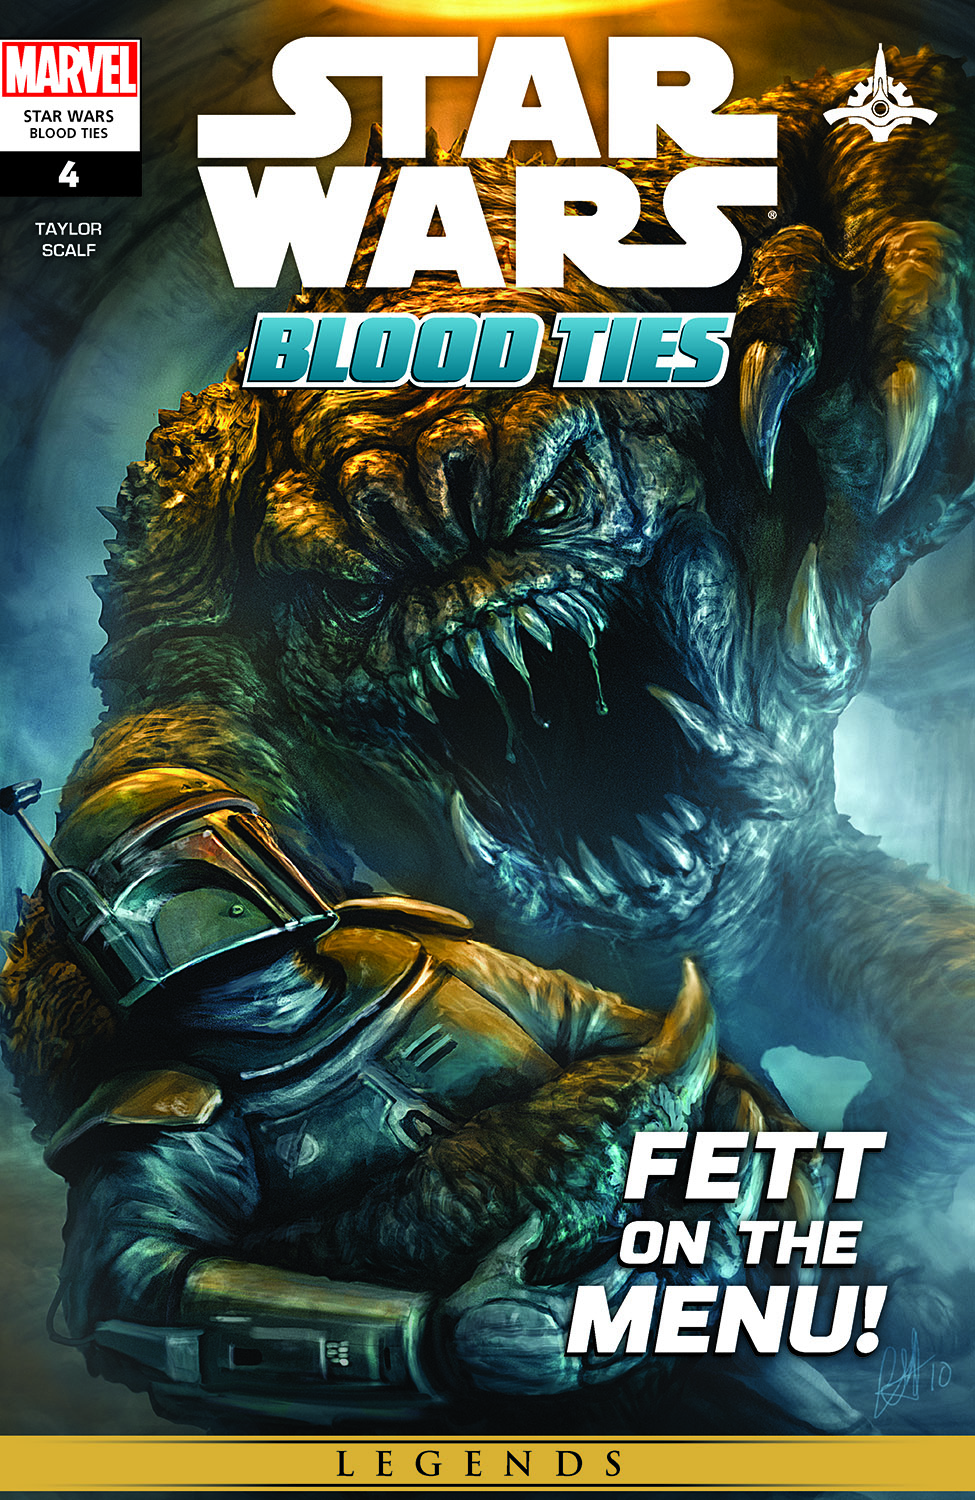 Star Wars: Blood Ties (2010) #4